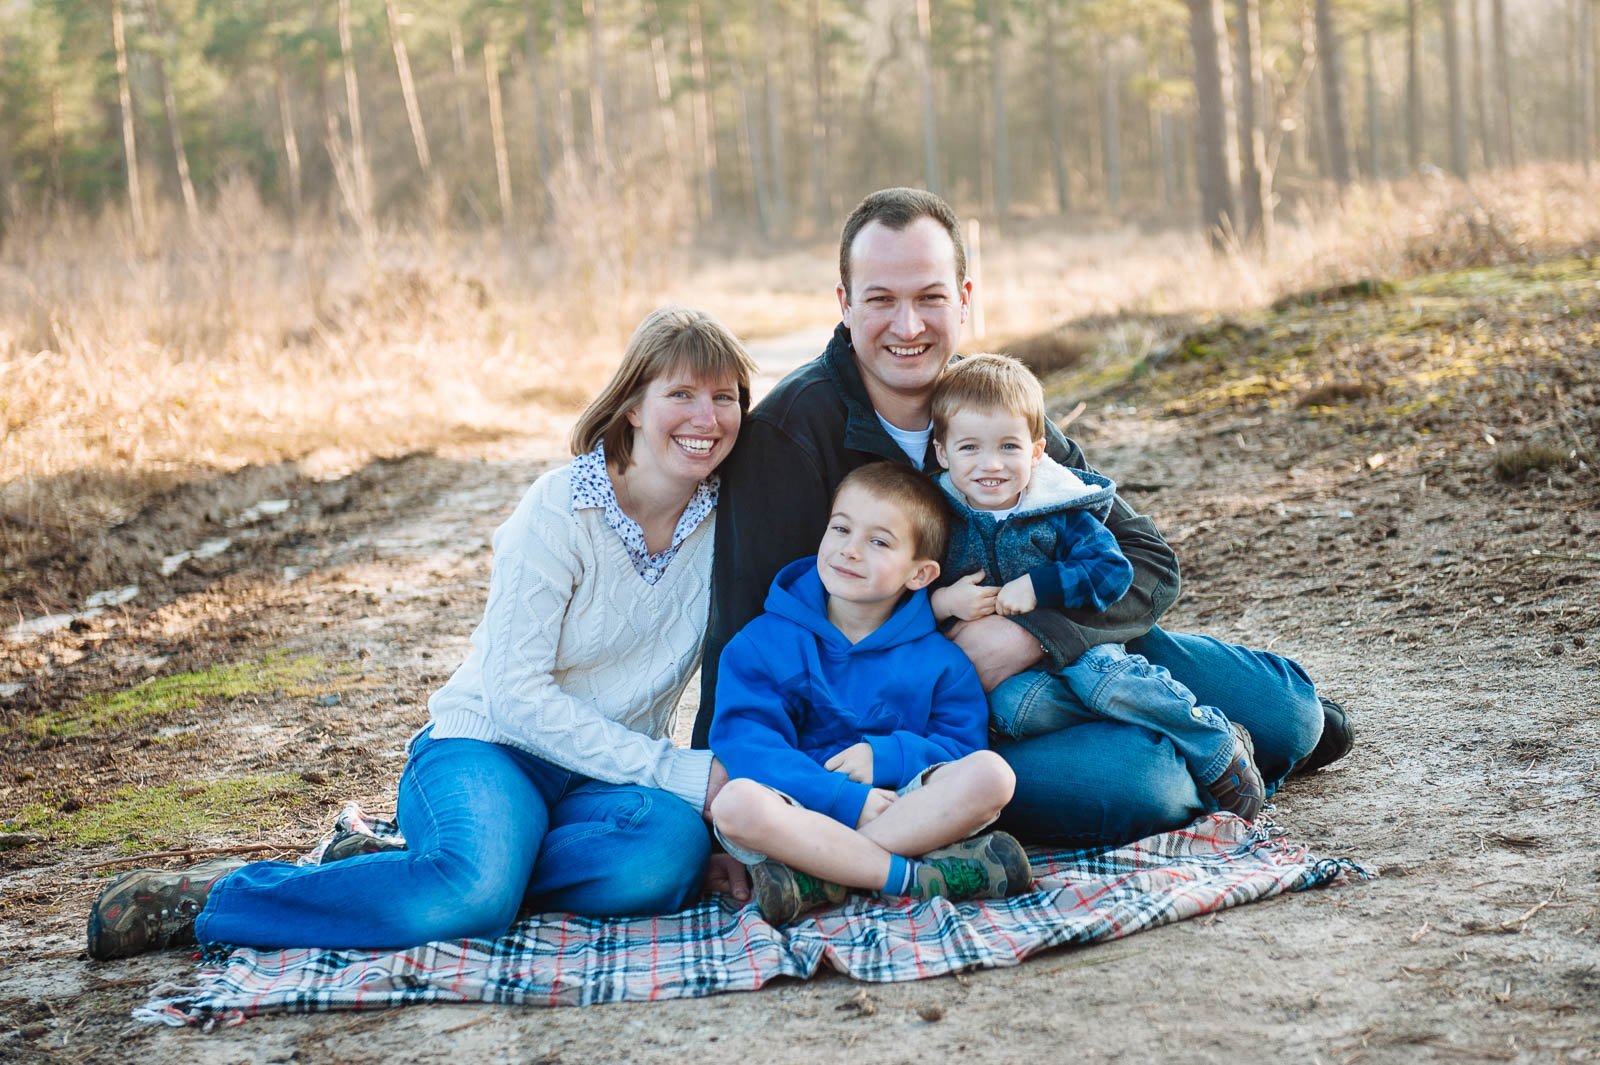 Family pose for photo sitting on a blanket